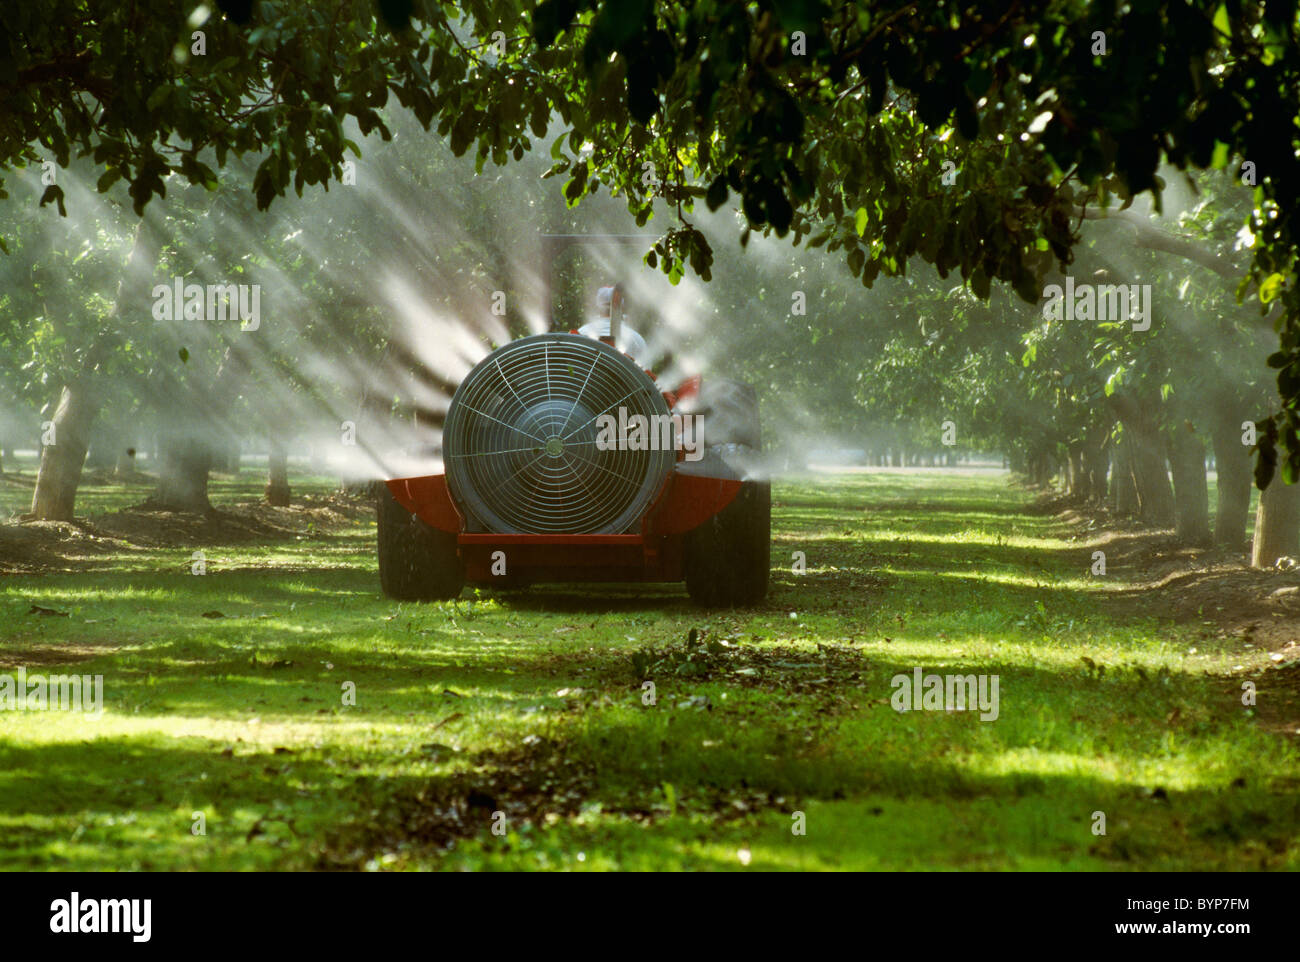 Agriculture Chemical Application Fan Spraying In A